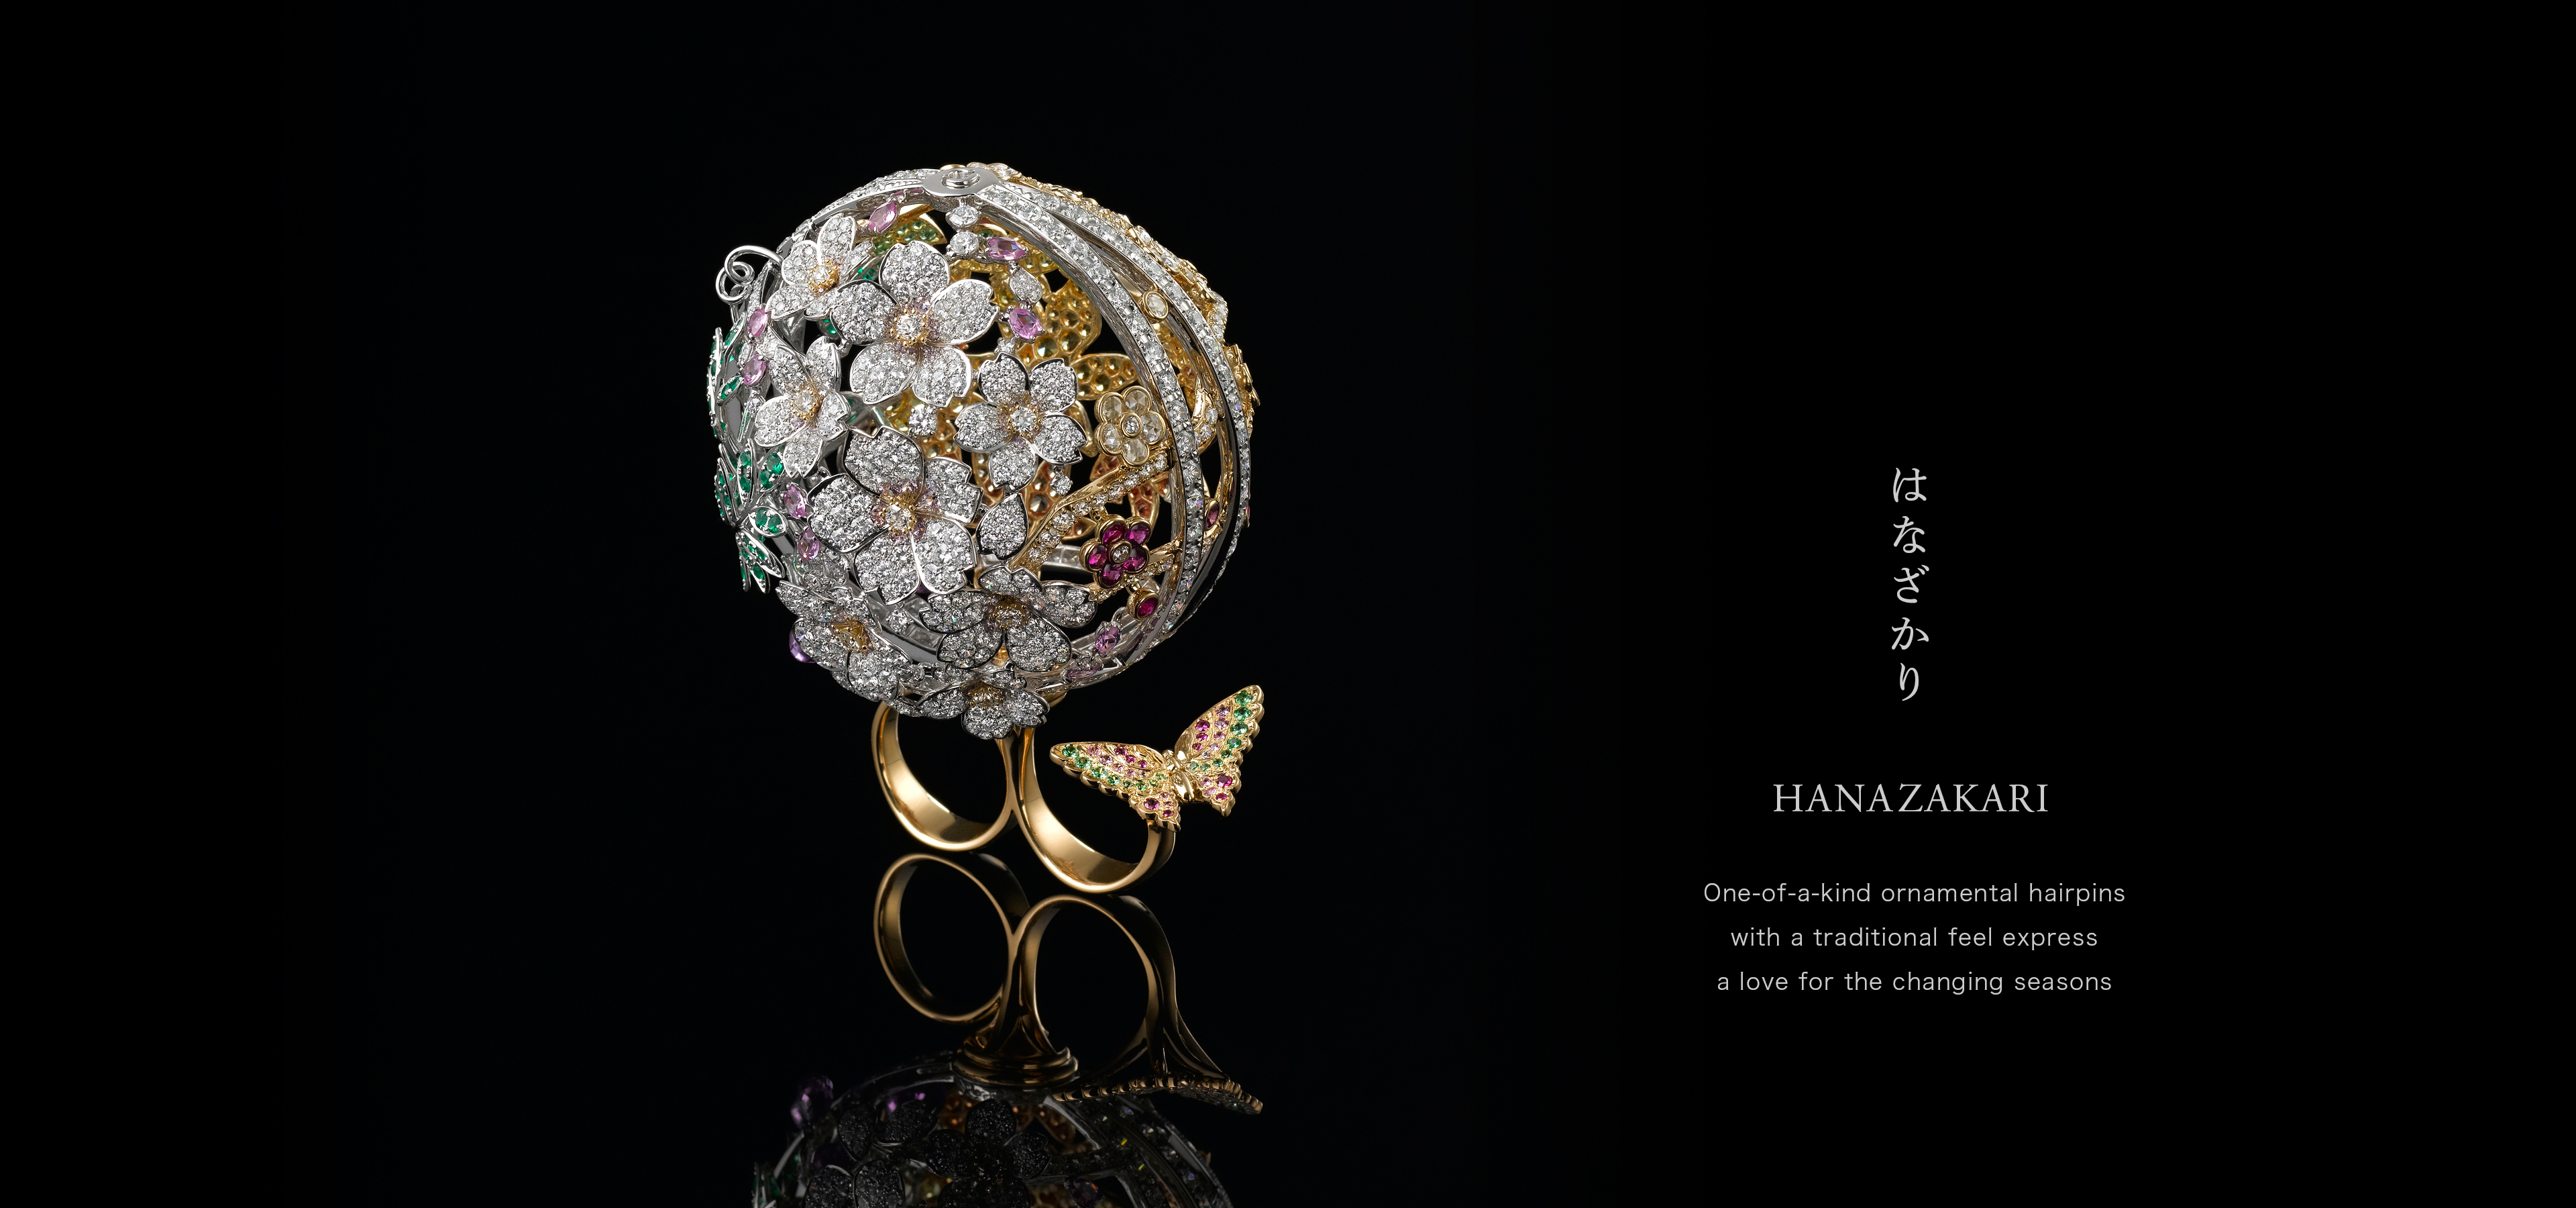 Hanazakari One-of-a-kind ornamental hairpins with a traditional feel express a love for the changing seasons